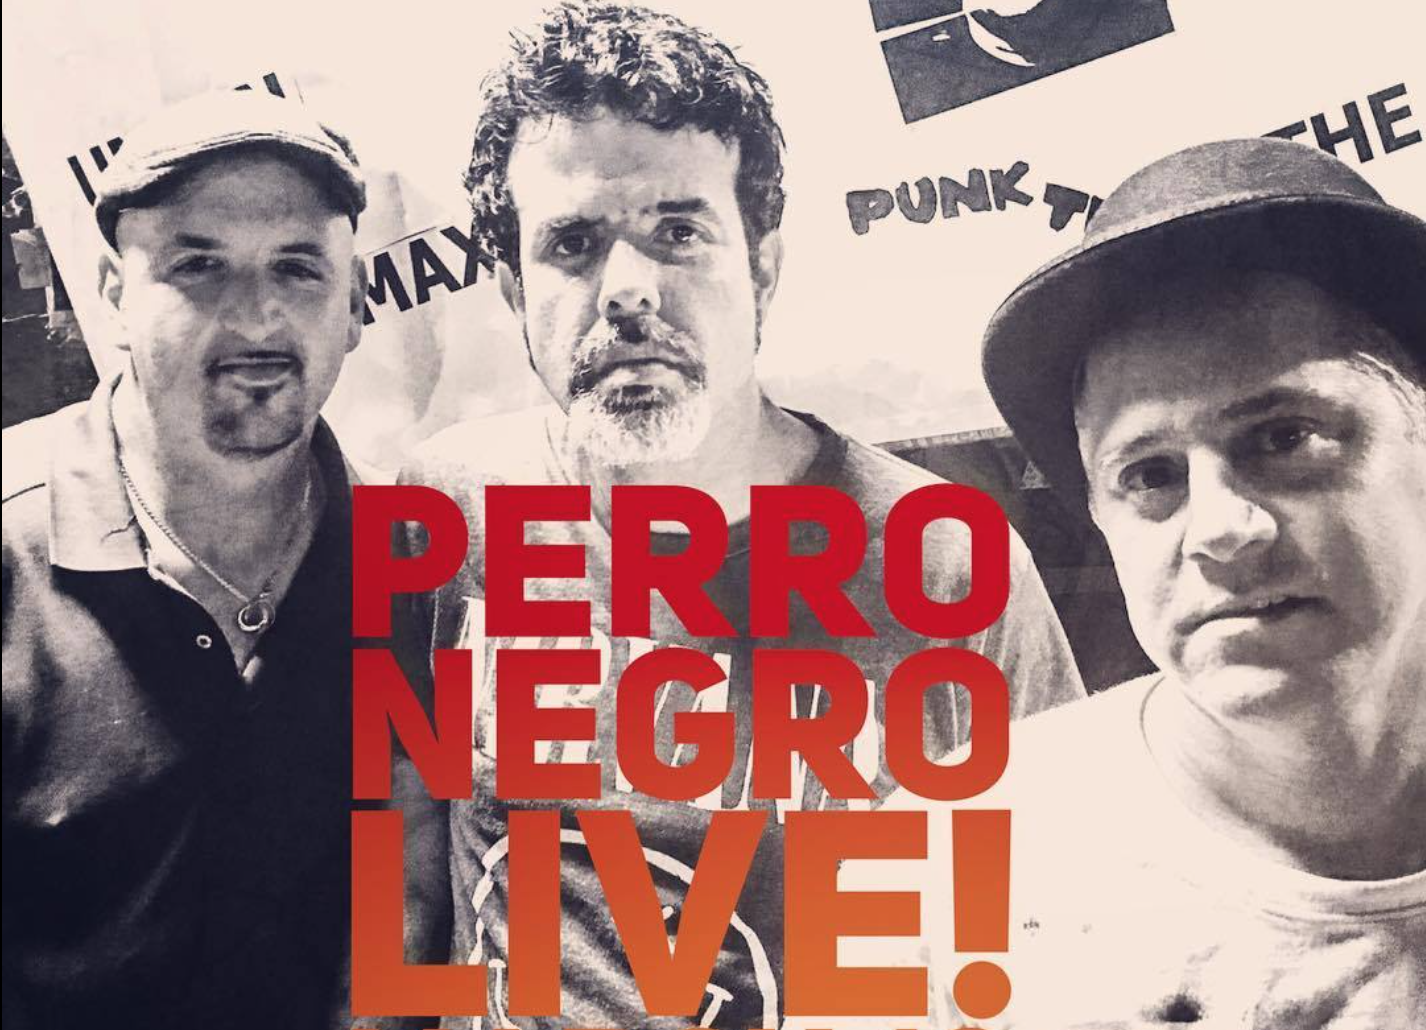 Miami Band Perro Negro Taking it One Day at a Time